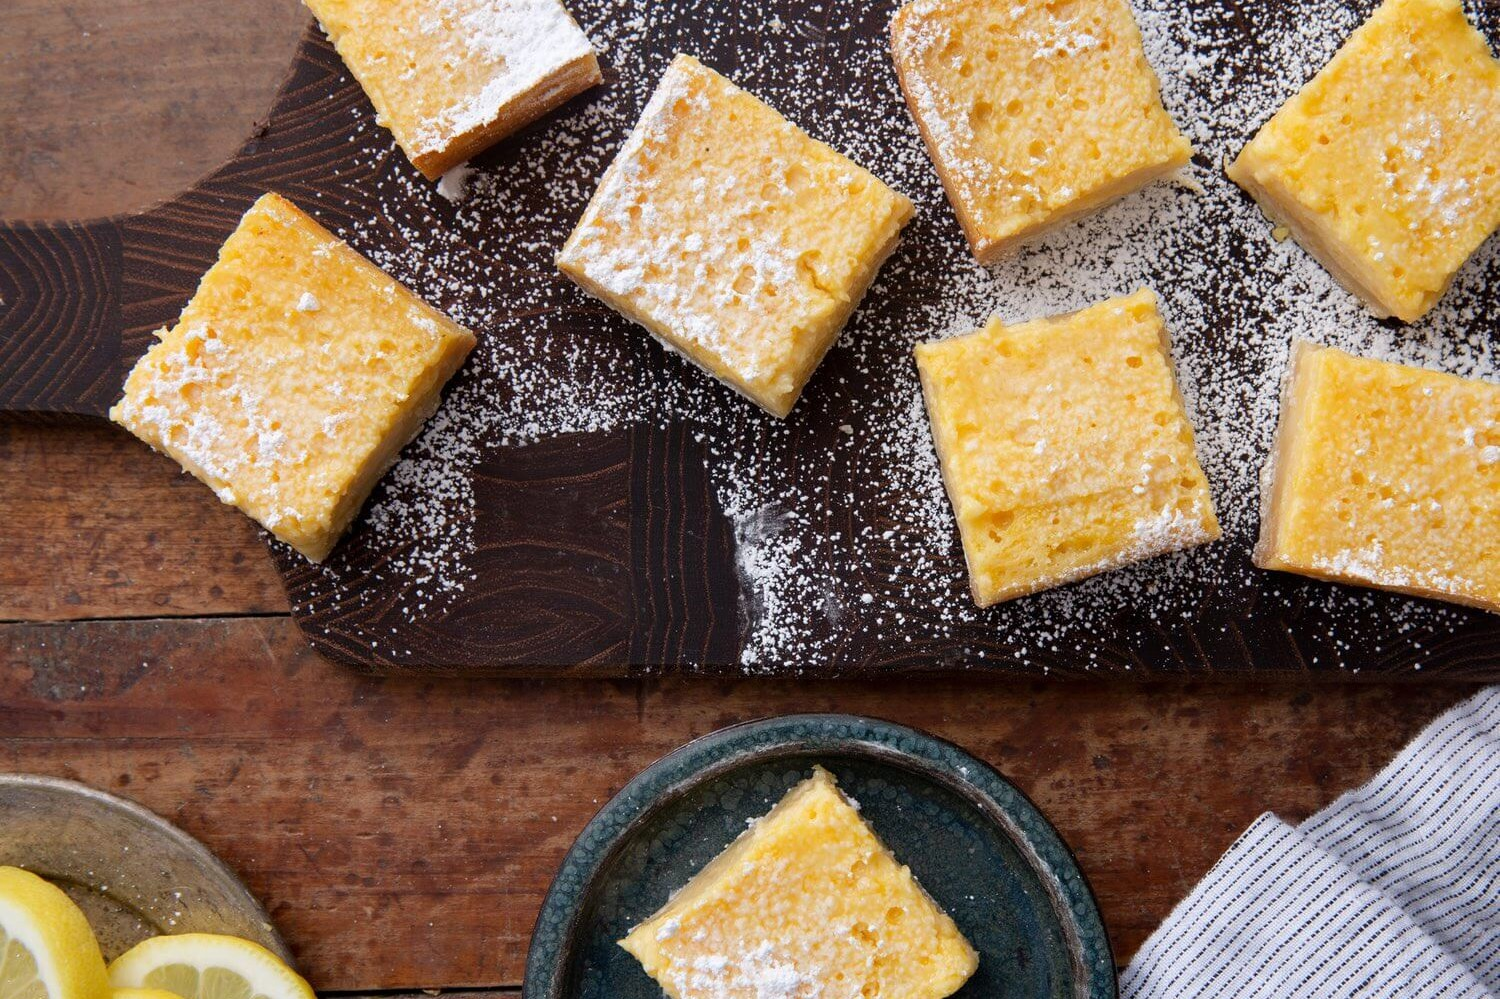 These highly acclaimed lemon ricotta bars are a summertime treat. These bars are made with fresh lemon, organic eggs, and a homemade crust. | peteandgerrys.com